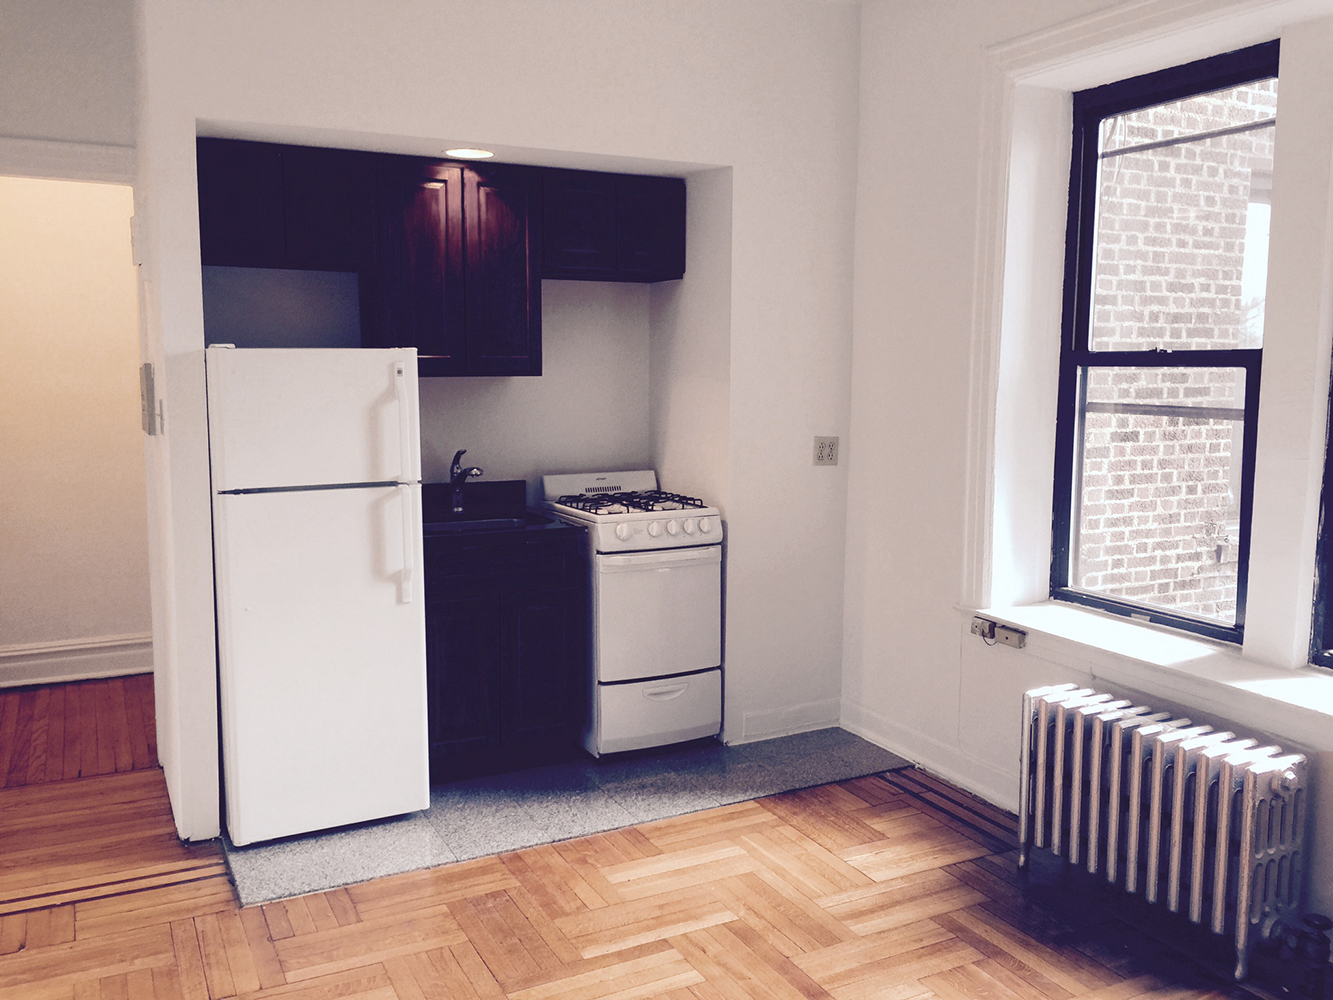 One Room Studio Apartment For Rent In Bay Ridge Brooklyn